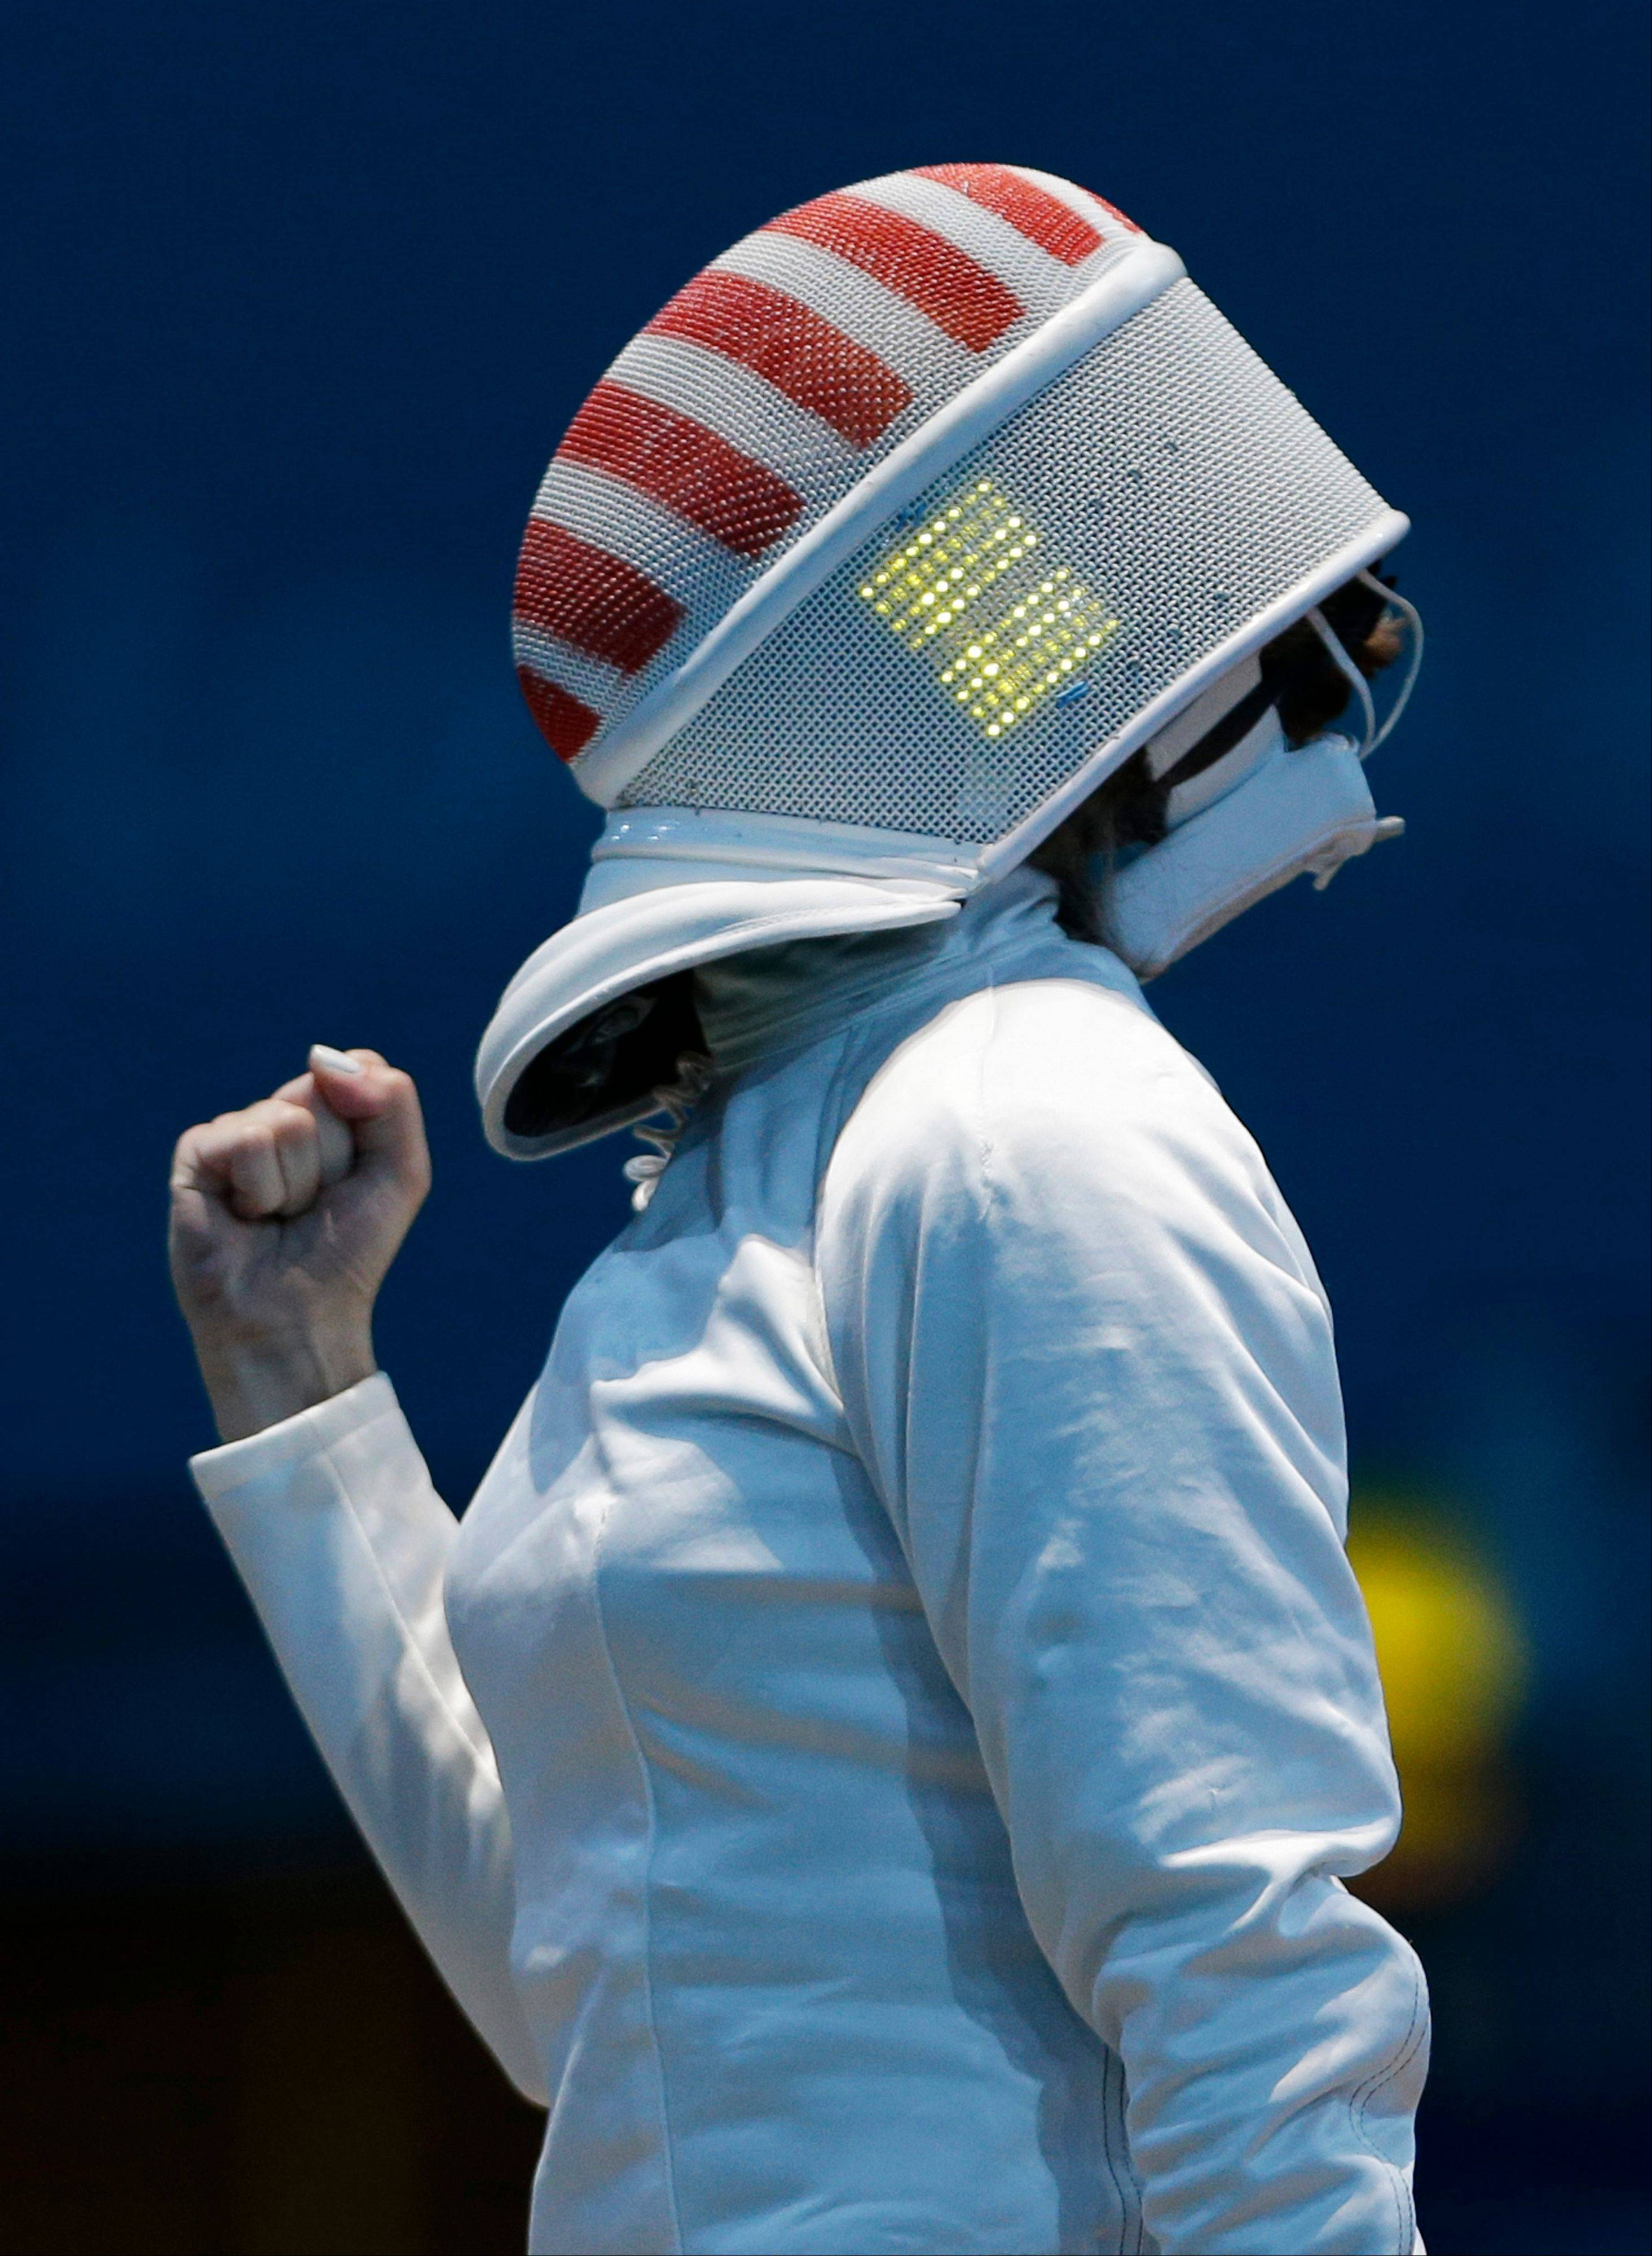 United States' Susie Scanlan reacts during her match against Italy's Nathalie Moellhausen in women's team epee fencing at the 2012 Summer Olympics, Saturday, Aug. 4, 2012, in London.